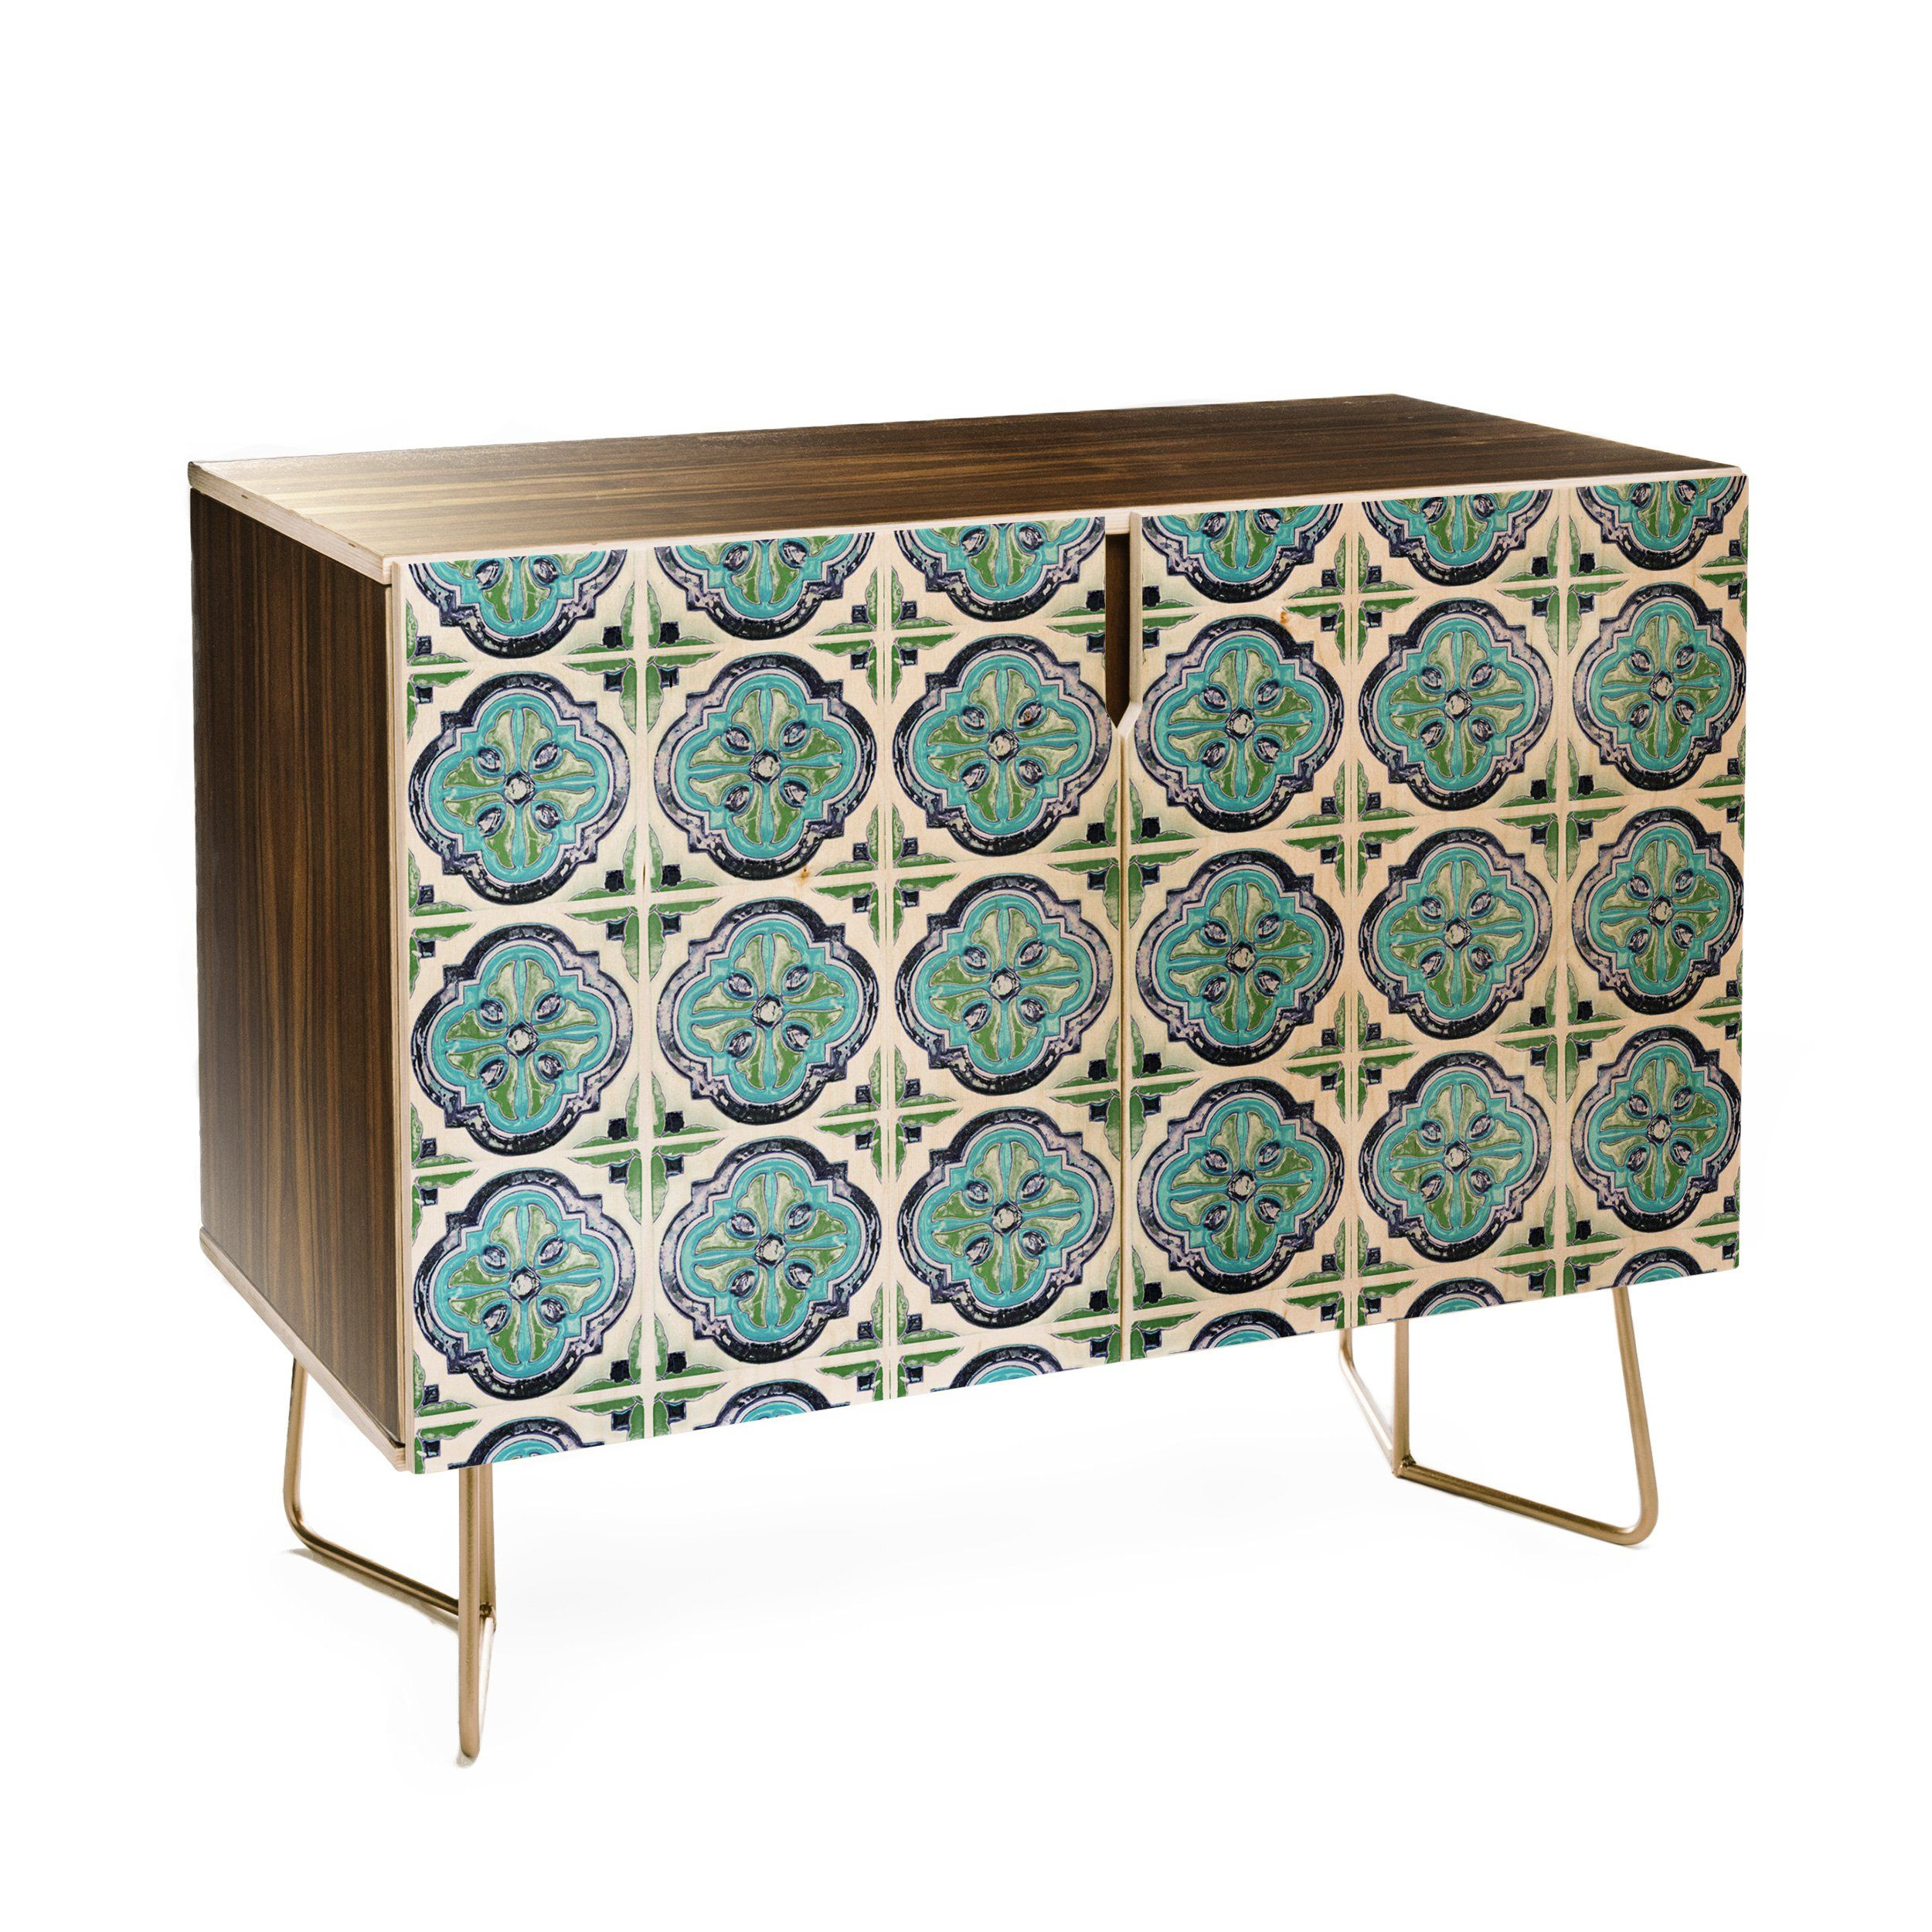 Catherine Mcdonald Antique Bohemia I Credenza | Shopping For Within Turquoise Skies Credenzas (View 9 of 30)